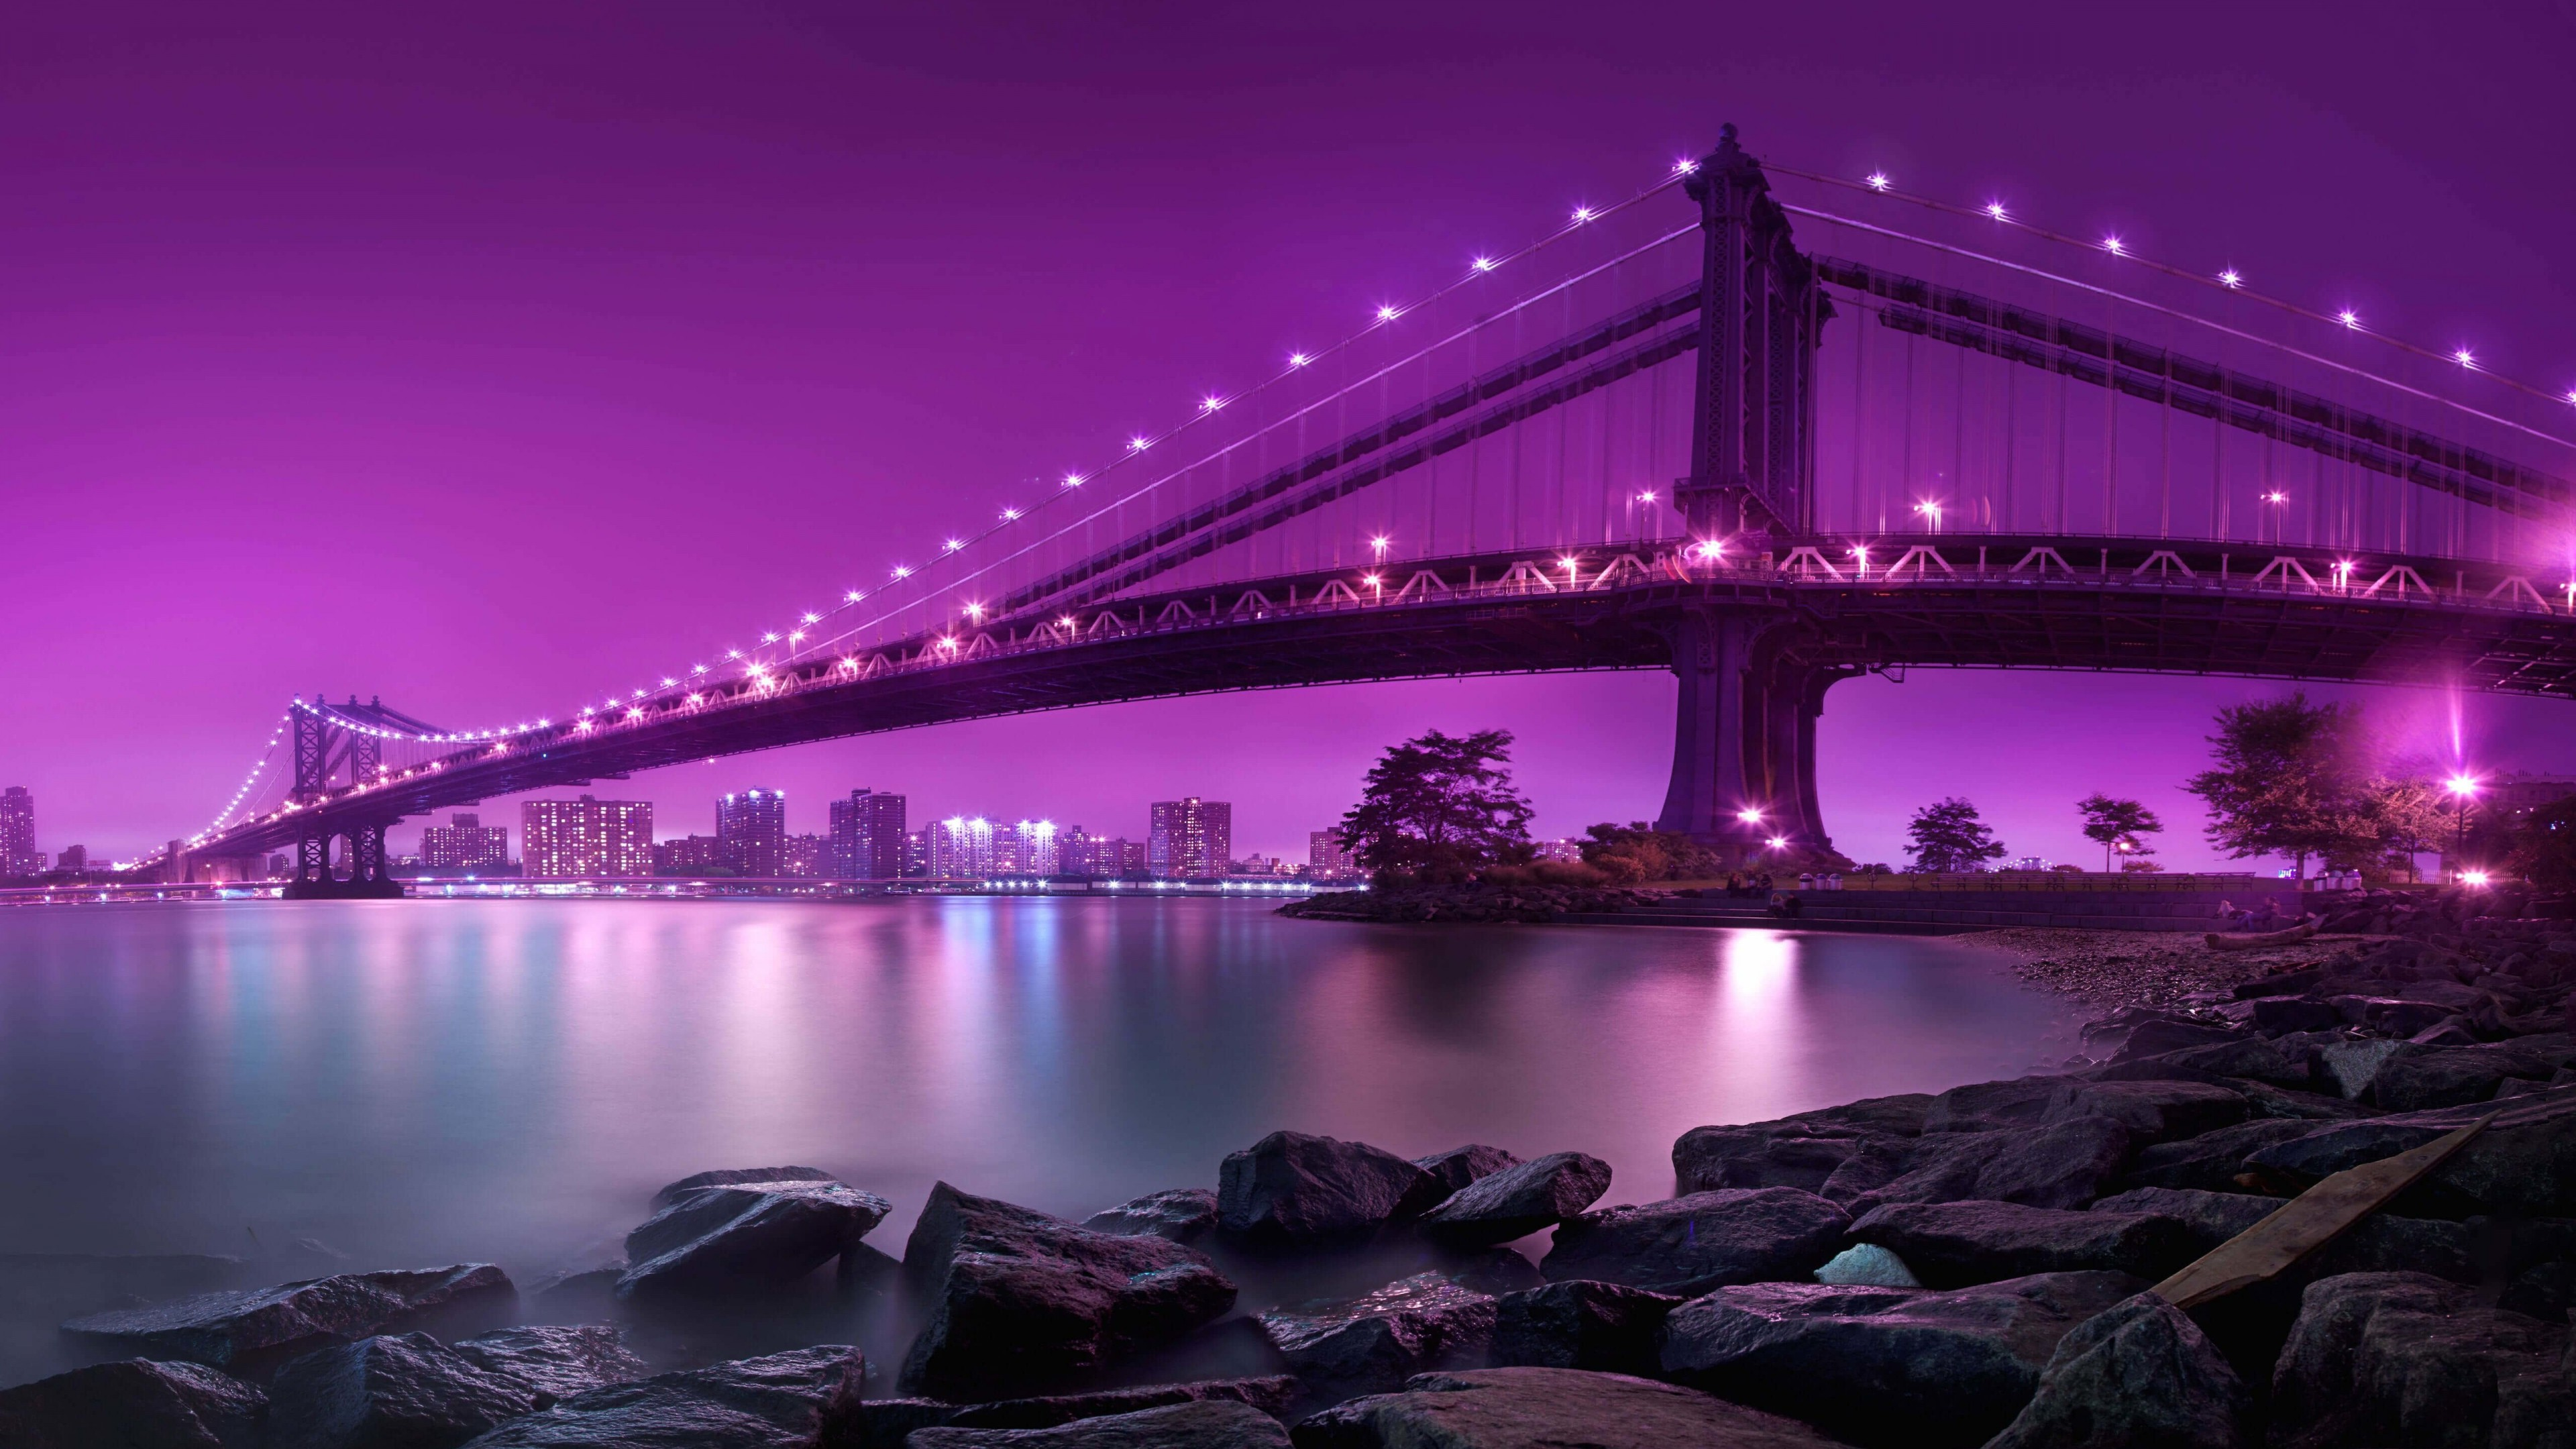 Brooklyn Bridge by night Wallpaper for Desktop 4K 3840x2160